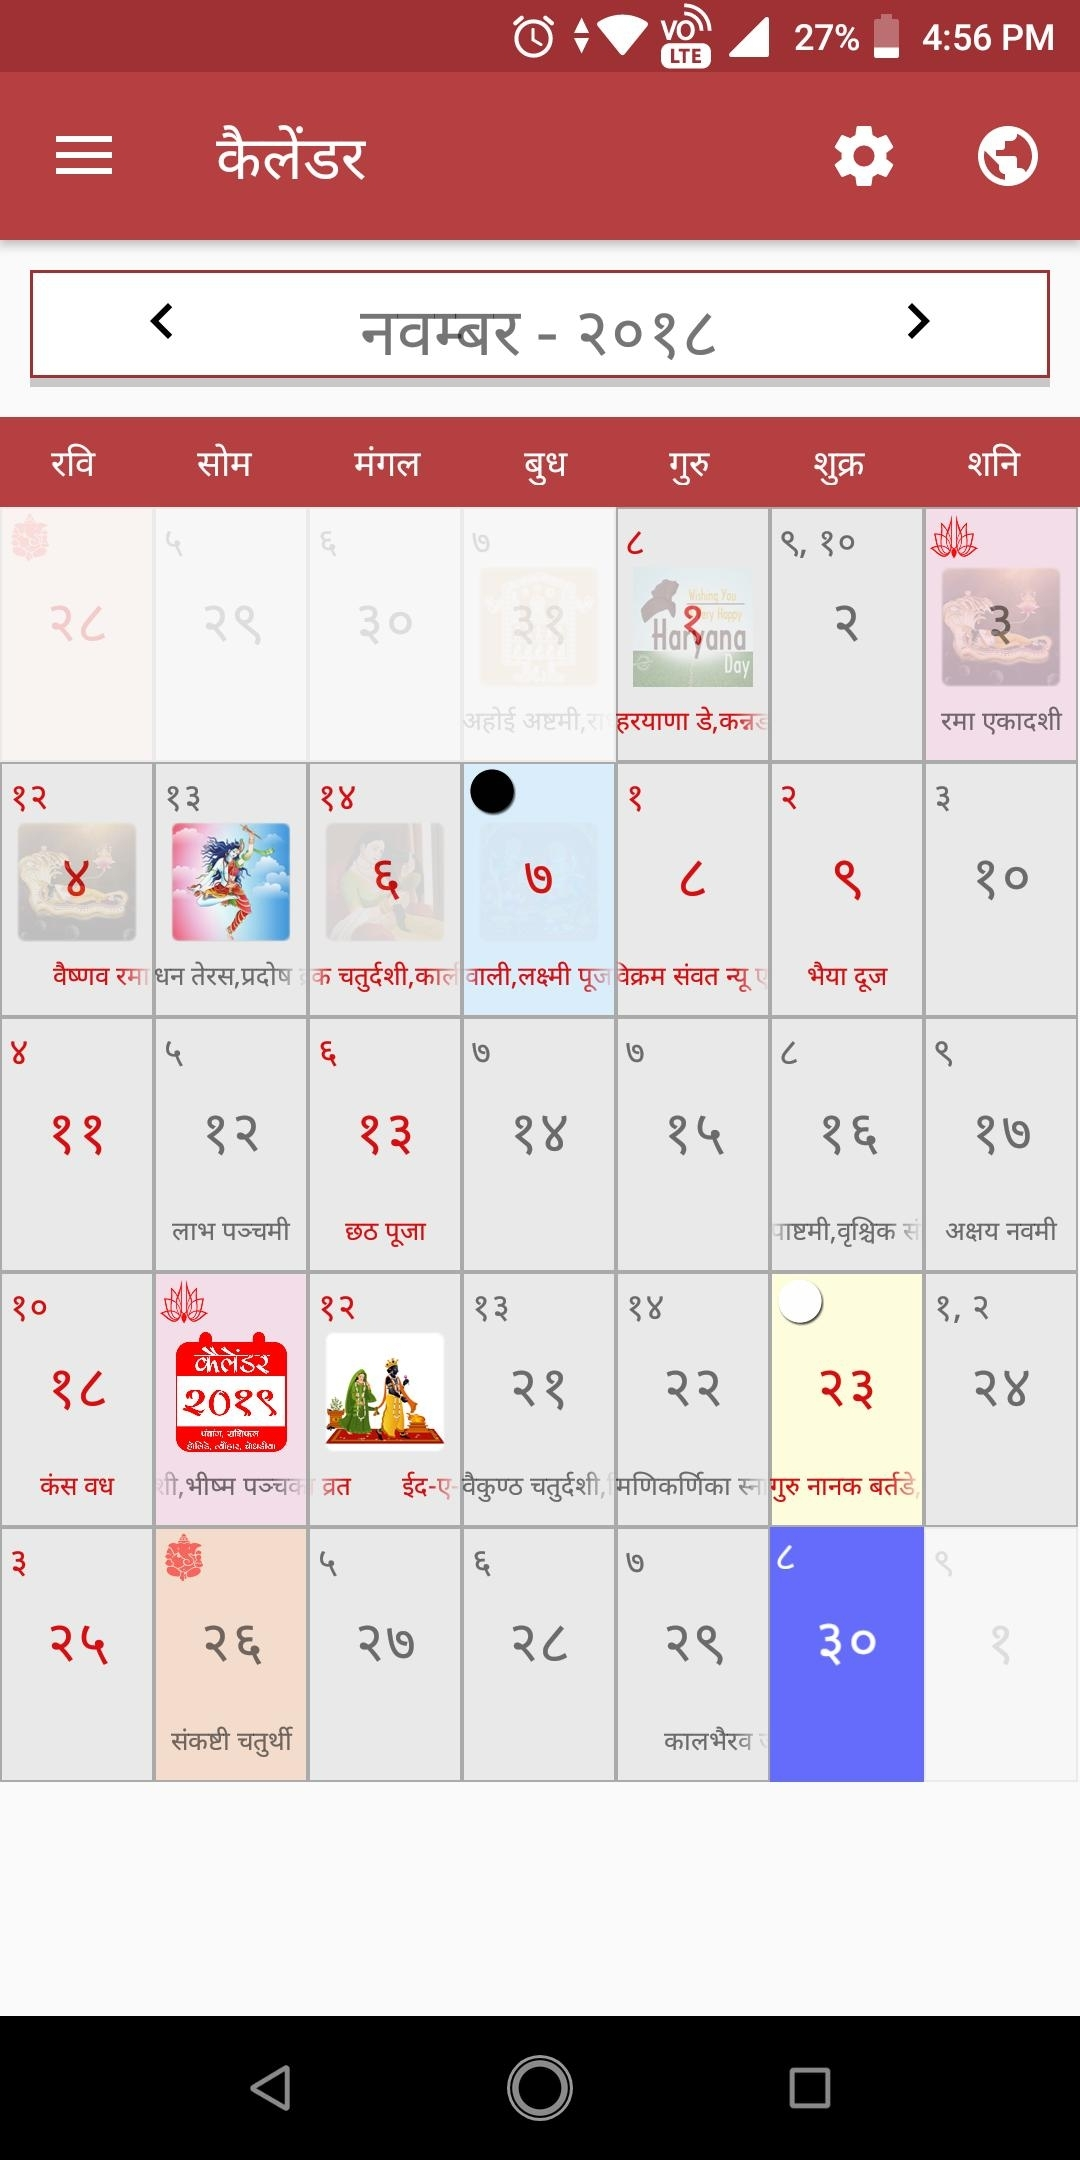 Hindi Calendar 2020 Panchang Rashifal Holiday Fest For